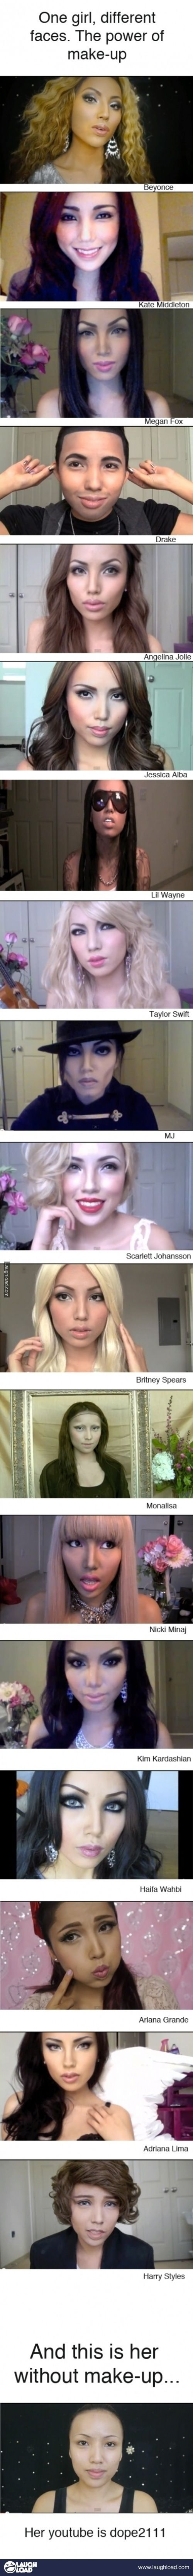 The power of make up.